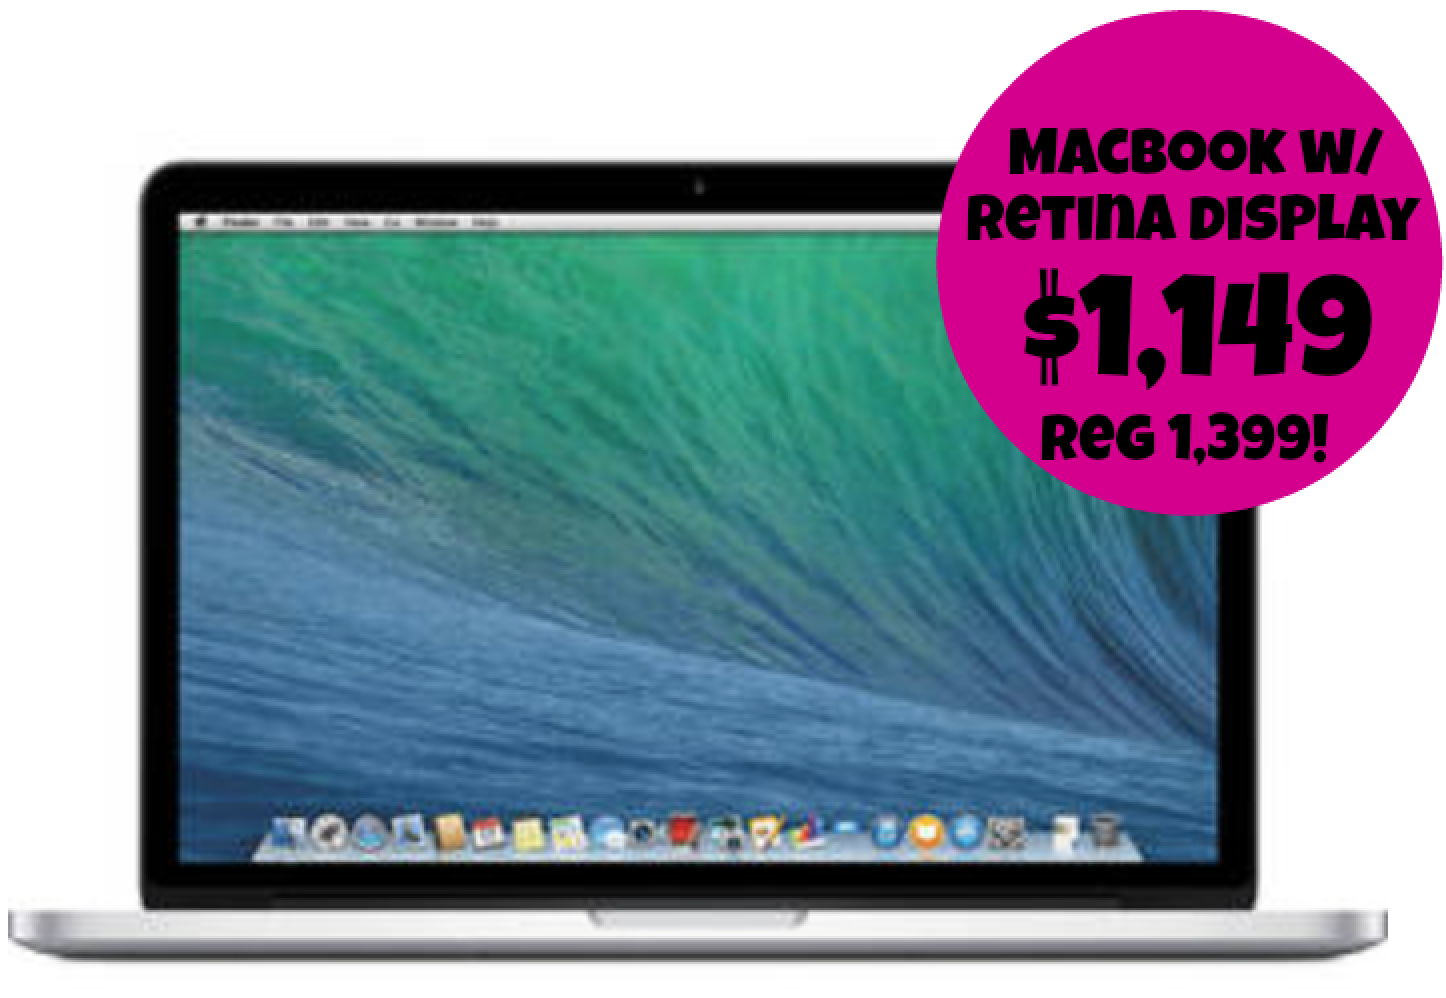 http://www.thebinderladies.com/2014/11/b-photo-macbook-pro-notebook-w-retina.html#.VGzmXYfduyM